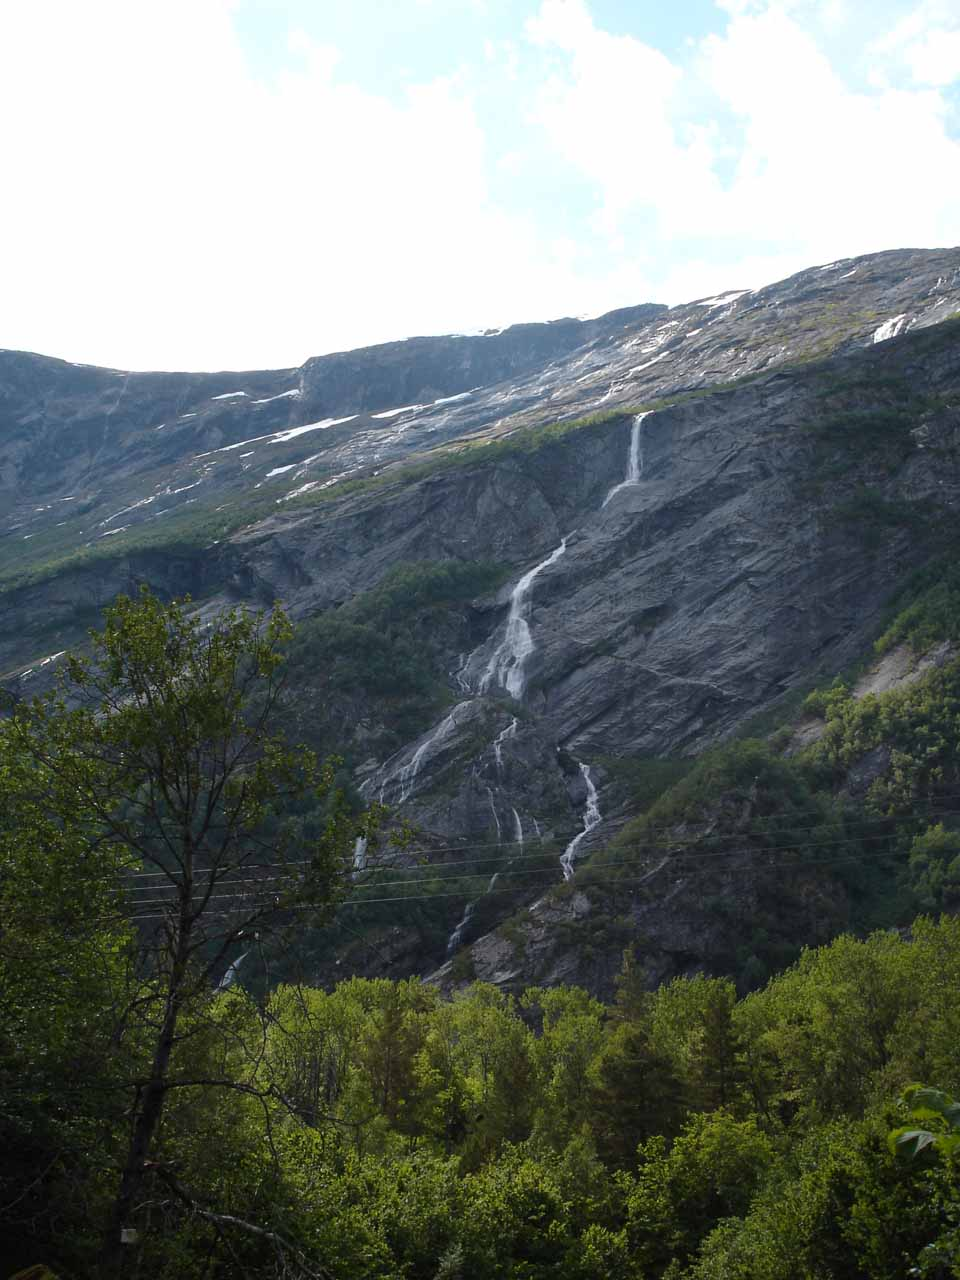 This tall but thin waterfall in Eikesdalen was the first one we saw when we left Mardalsfossen.  I believe it was on either the Sandgrova watercourse or Bruåa watercourse.  So I guess it could be called Sandgrovafossen or Bruåafossen, depending on which watercourse it belonged to